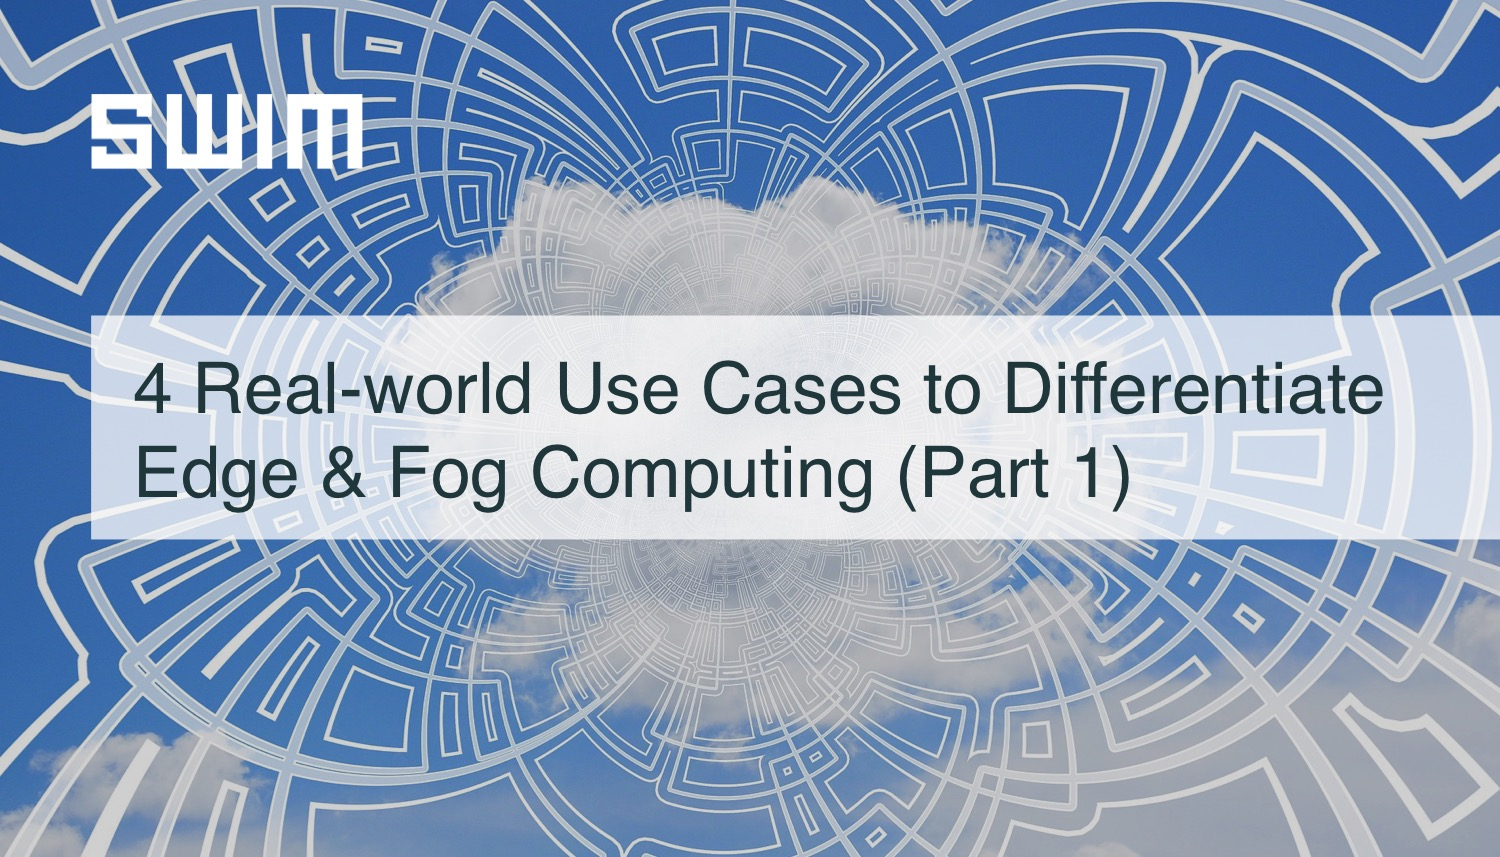 4 Real-world Use Cases to Differentiate Edge Computing & Fog Computing (Part 1) | Swim Inc.